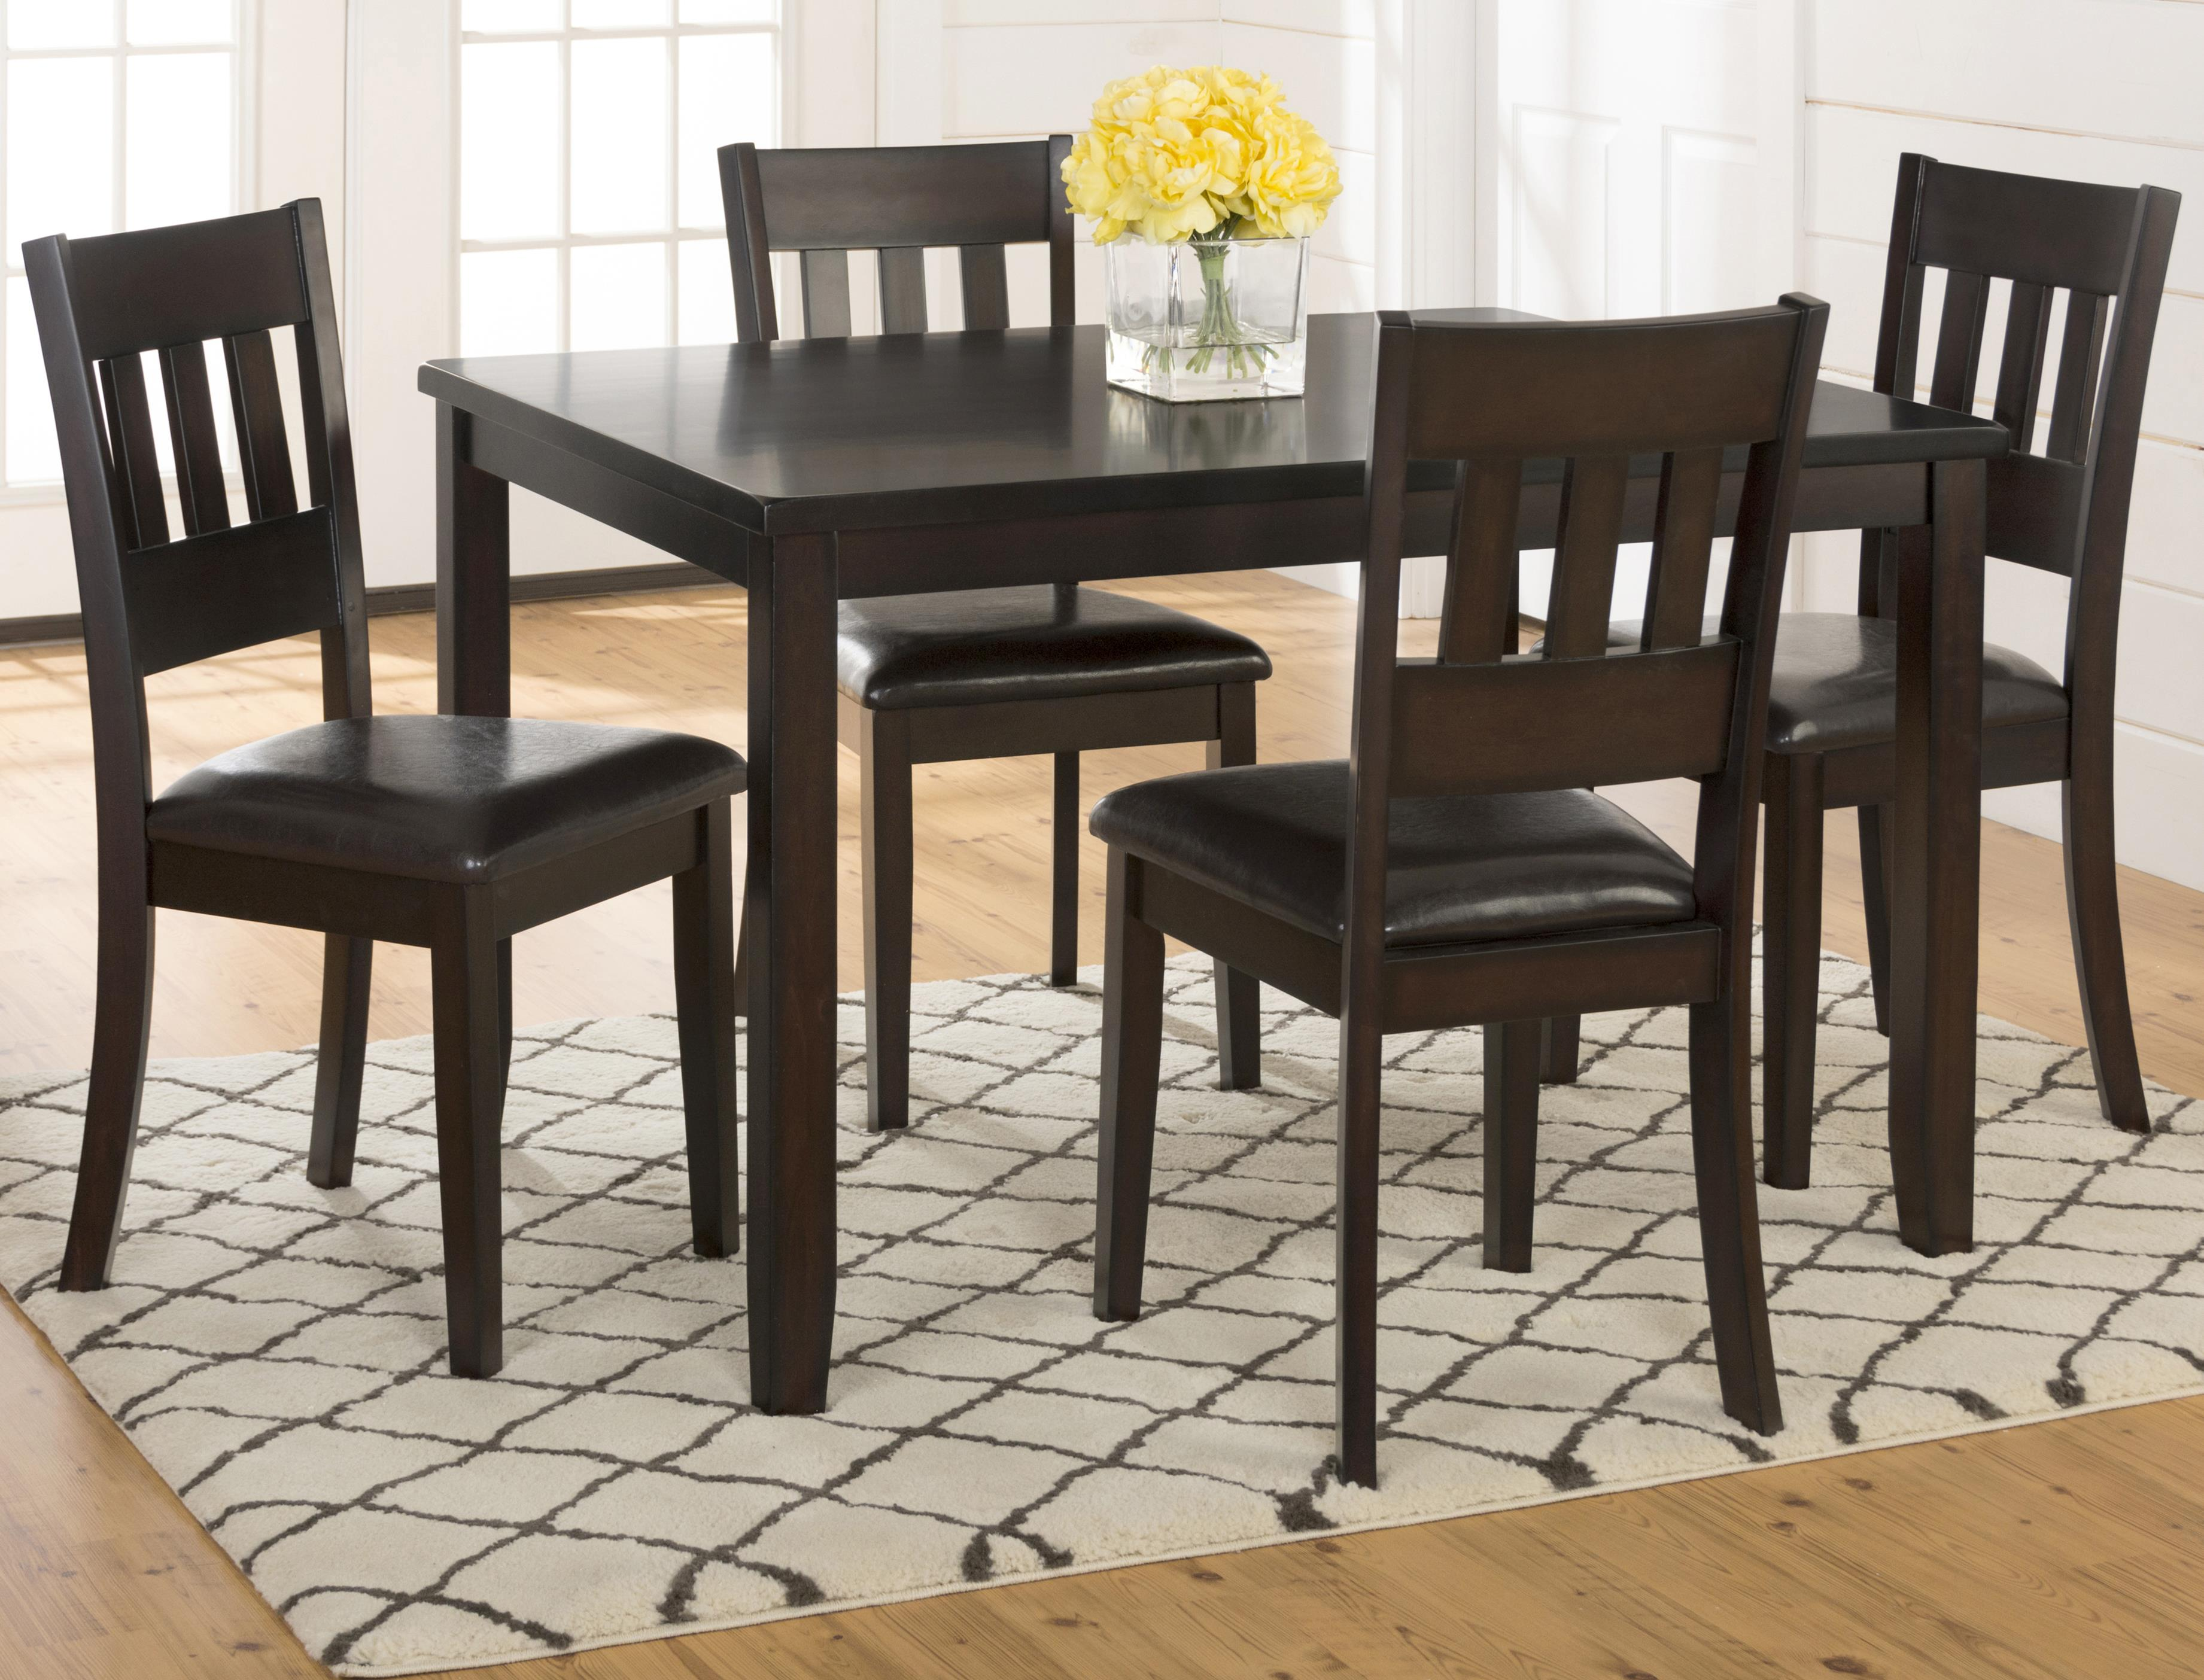 5-Pack- Table and 4 Chairs